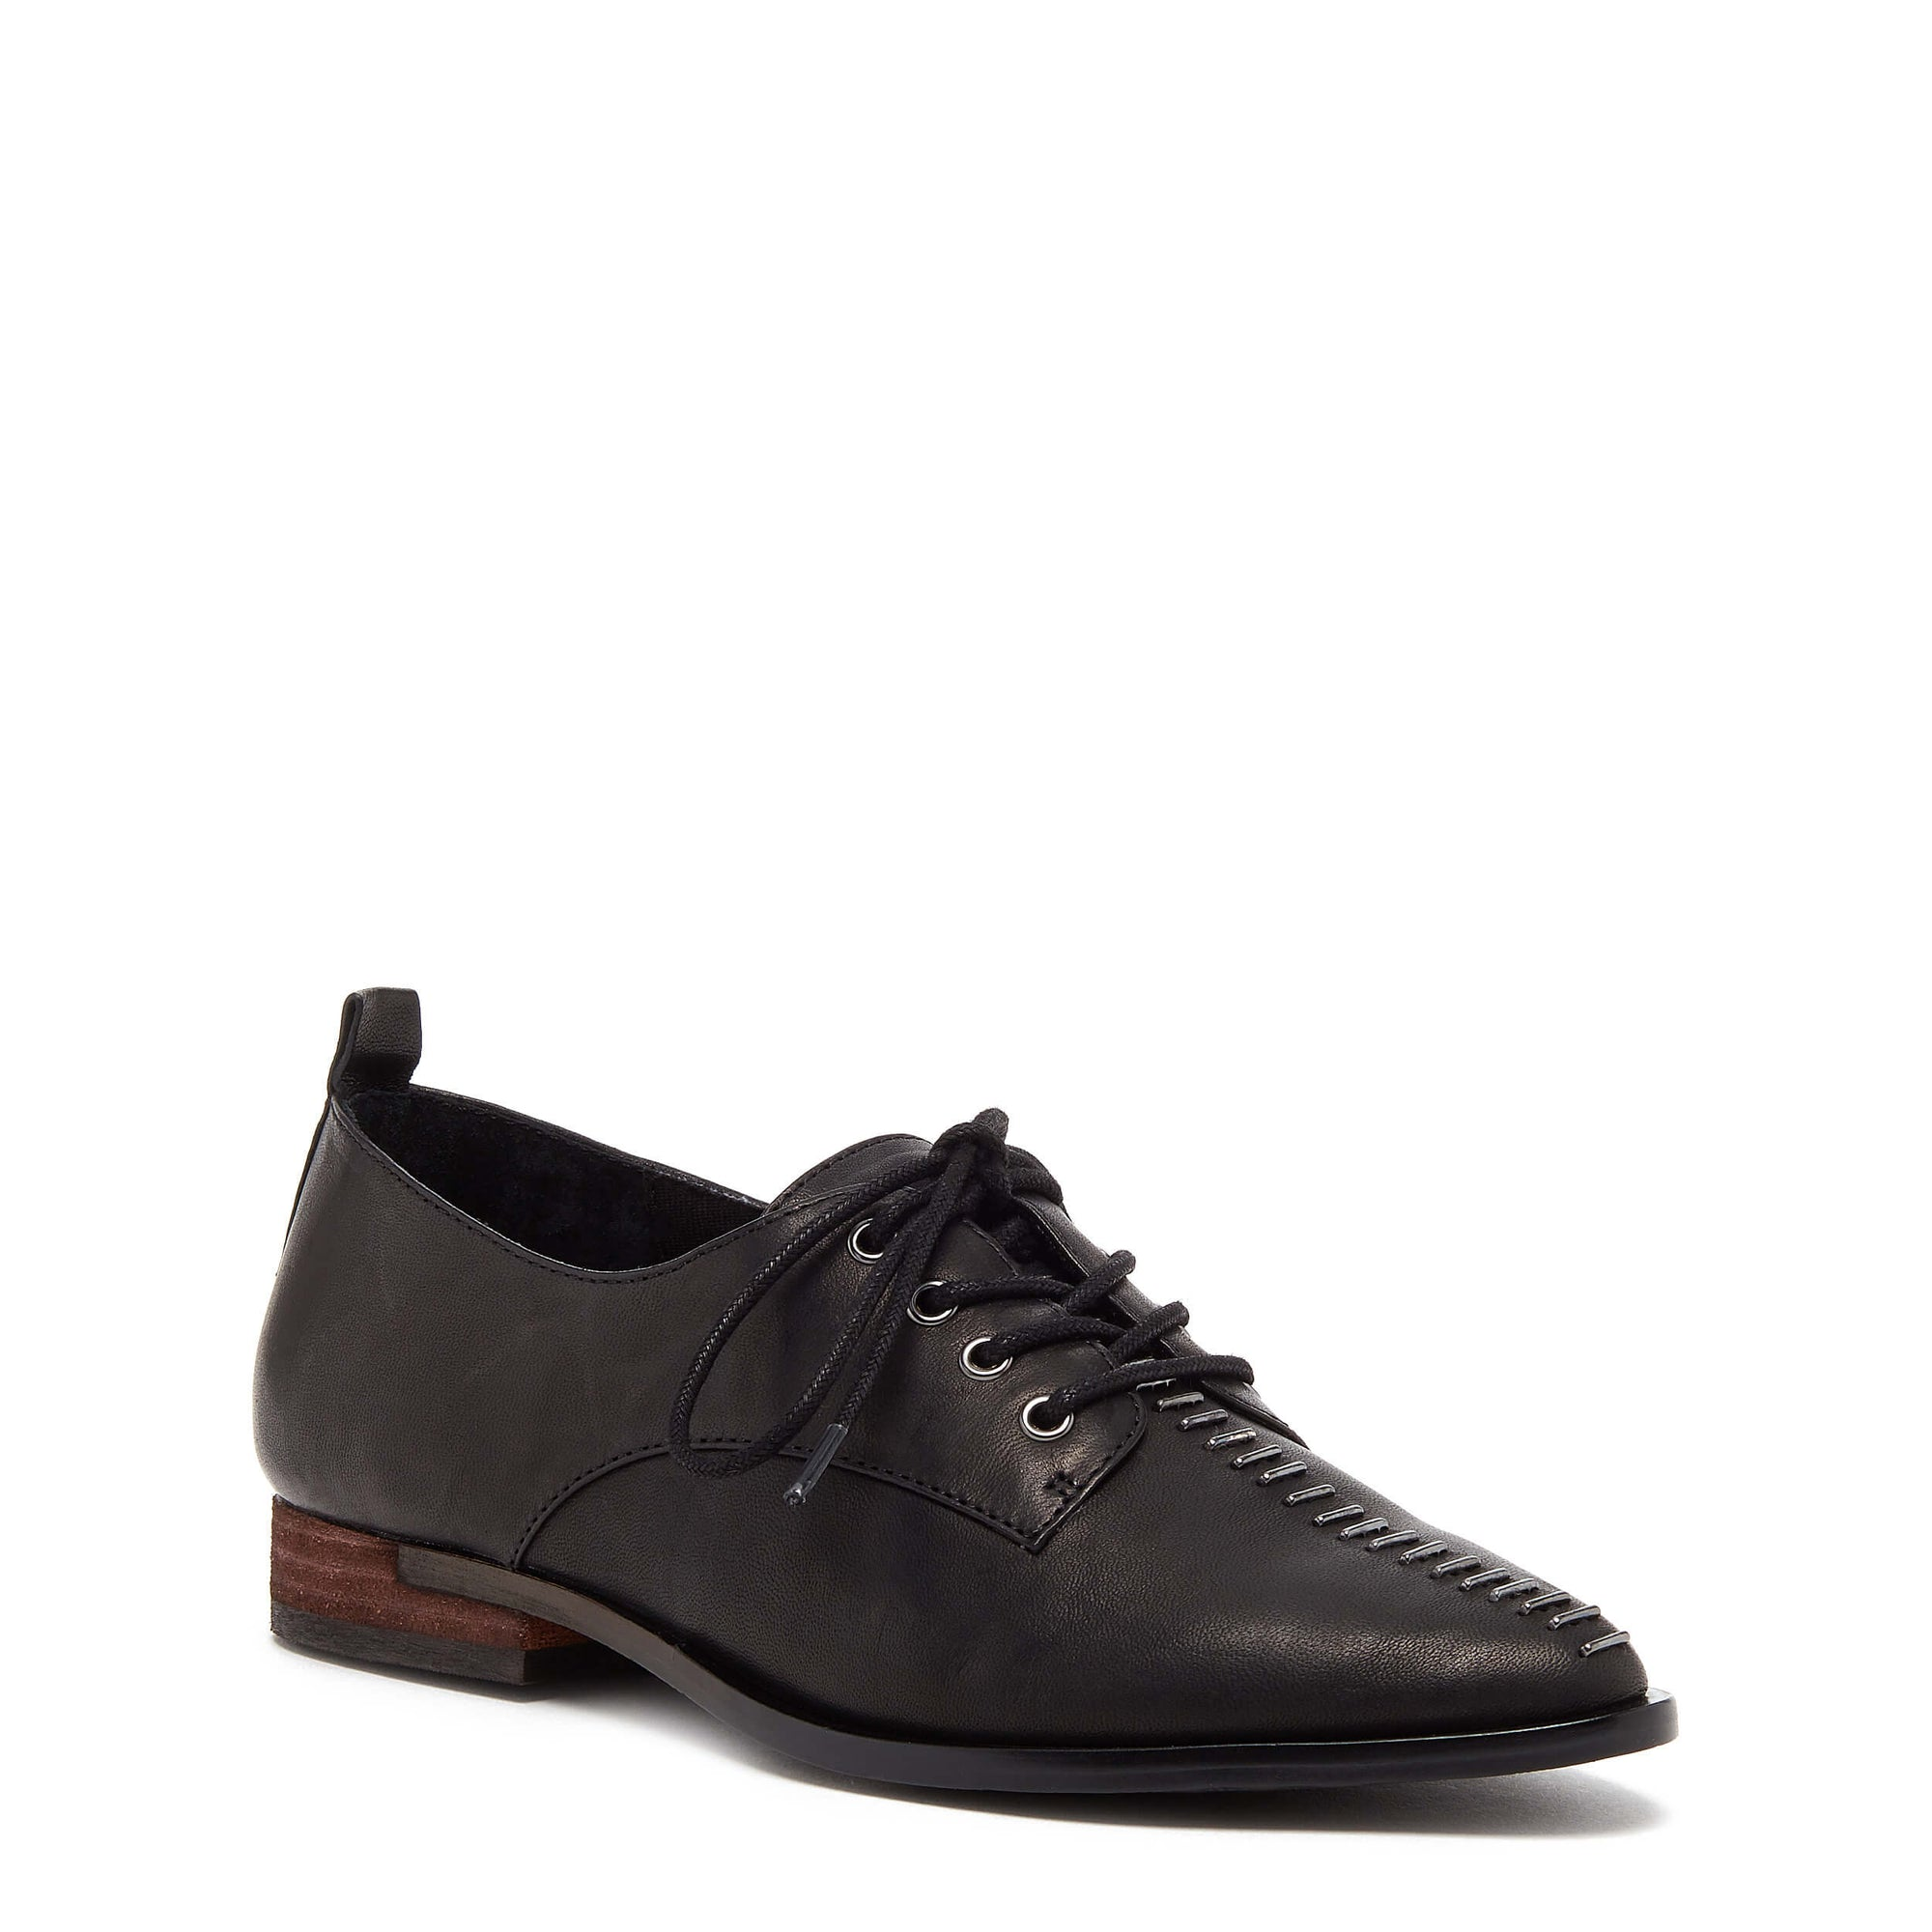 Kelsi Dagger Savas Black Leather Oxford